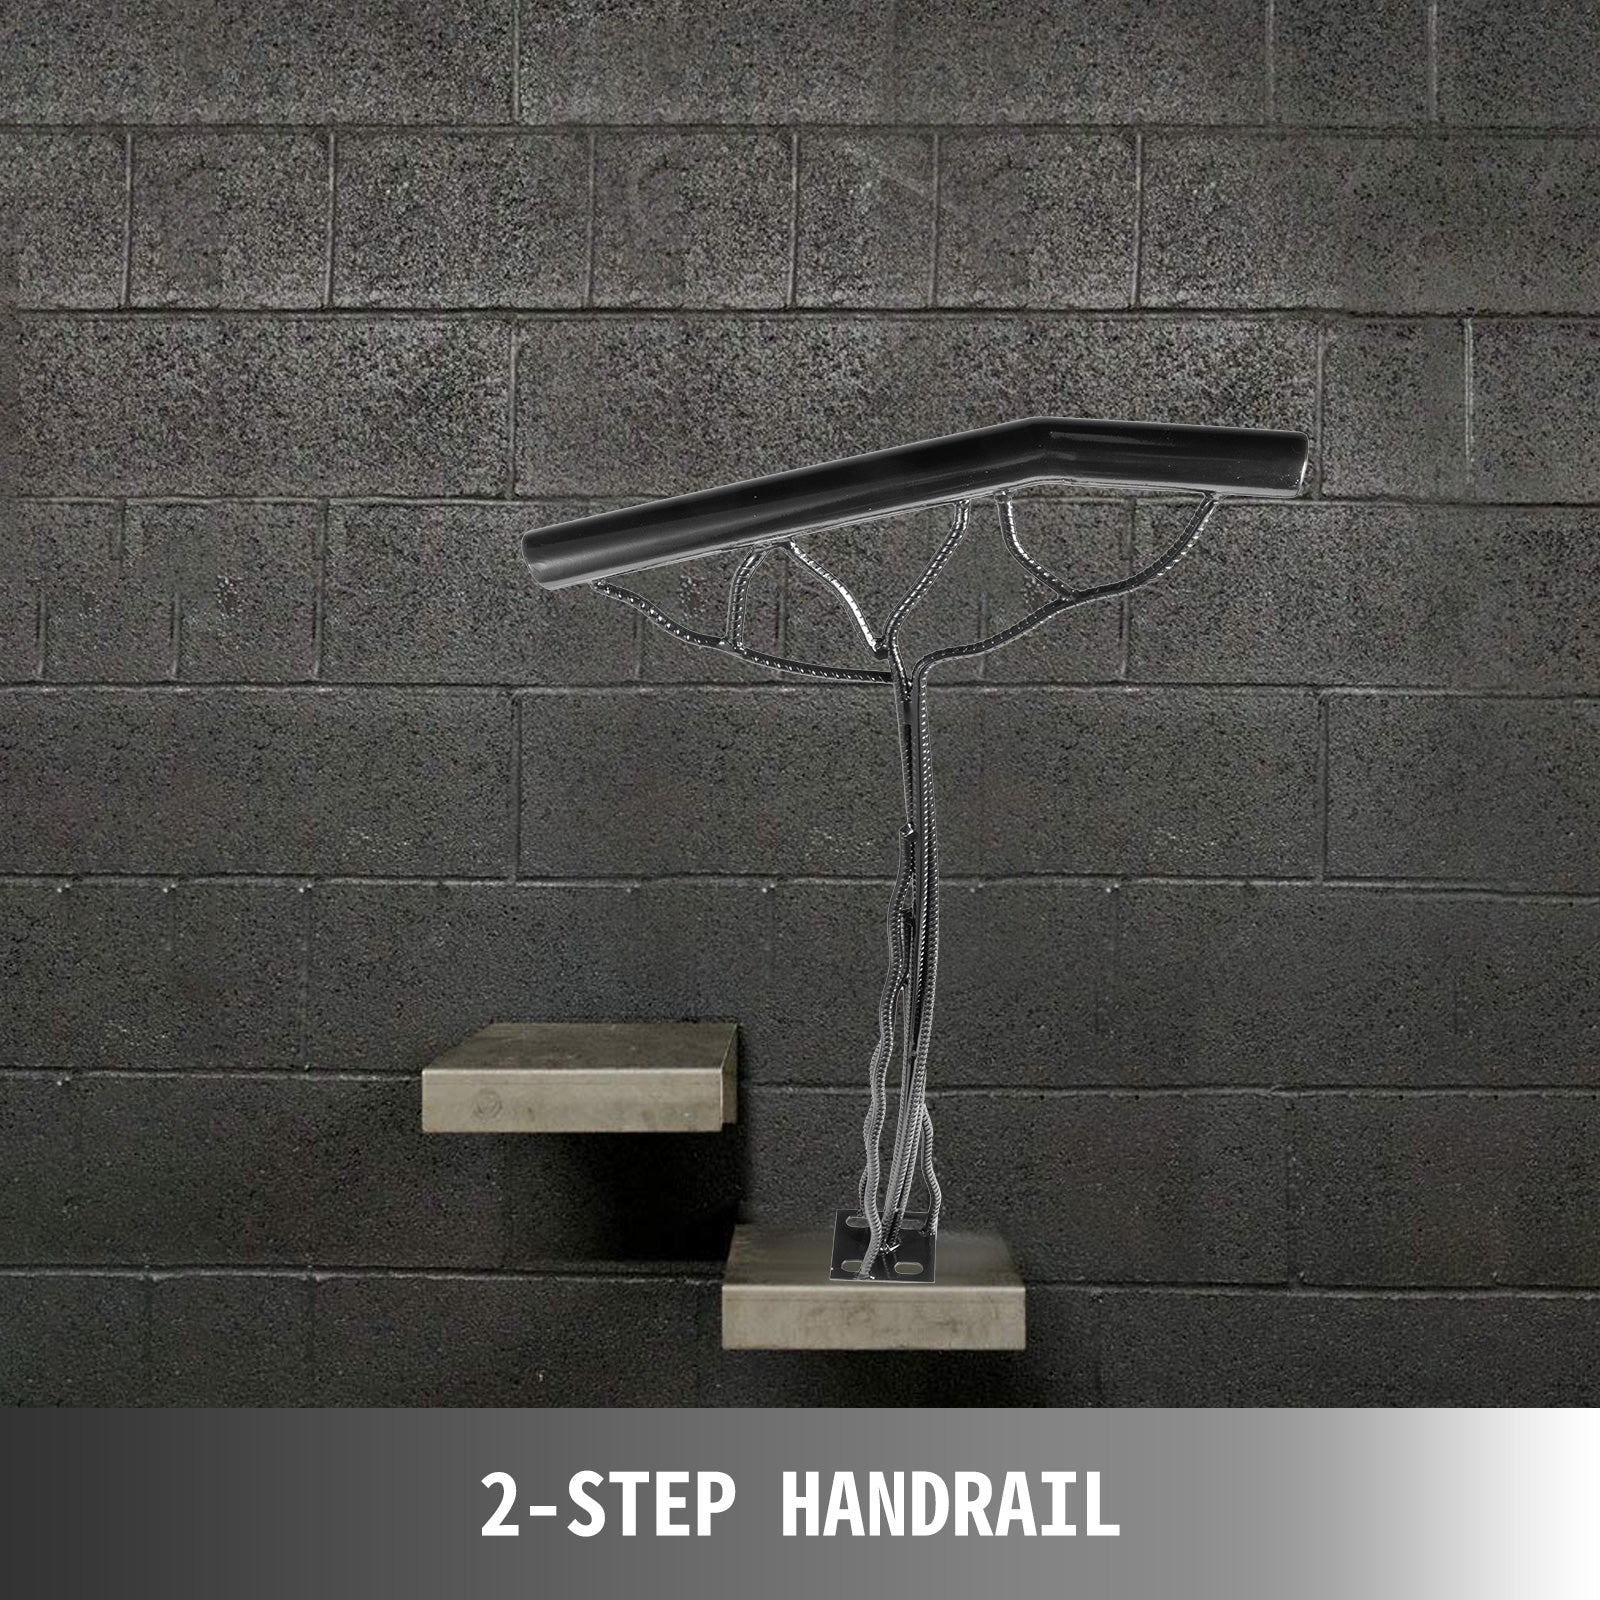 2-step Handrail Single Post Handrail Branch-type Metal Handrail For Stairs Steel